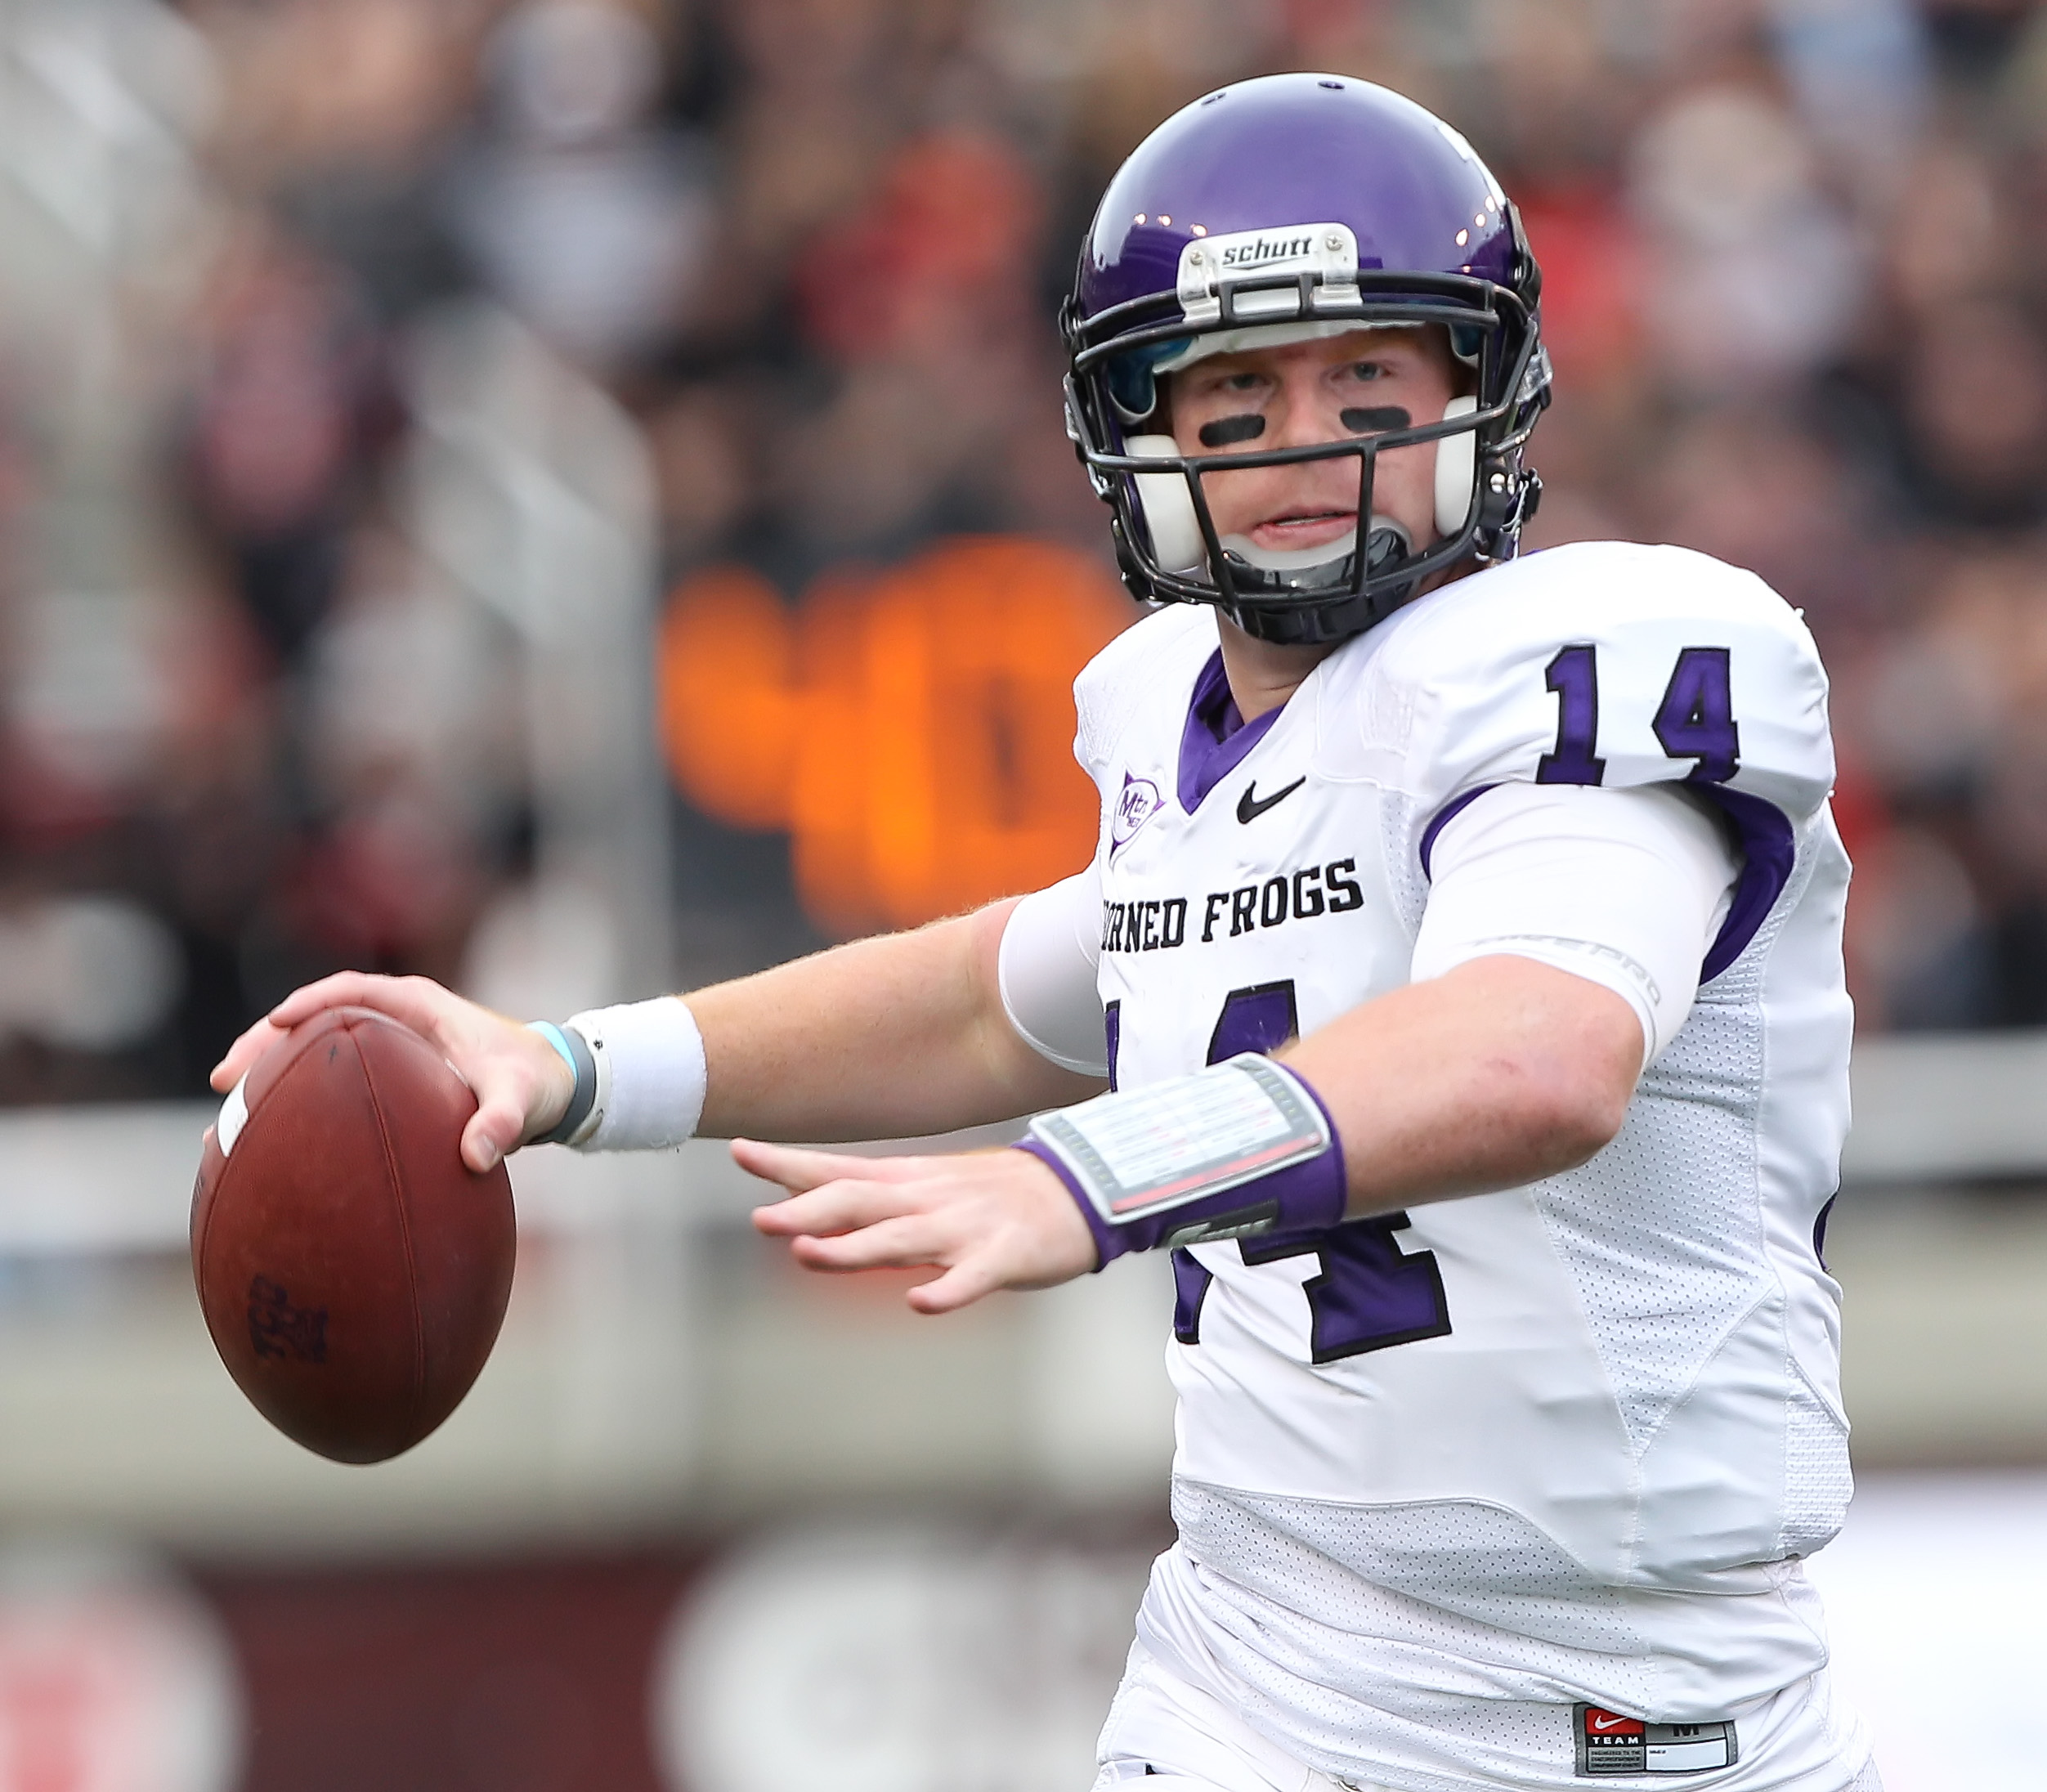 SALT LAKE CITY, UT - NOVEMBER 6: Quarterback Andy Dalton #14 of the TCU Horned Frogs throws a pass against the Utah Utes during the second half of an NCAA Football game November 6, 2010 at Rice-Eccles Stadium in Salt Lake City, Utah. TCU Beat Utah 47-7.